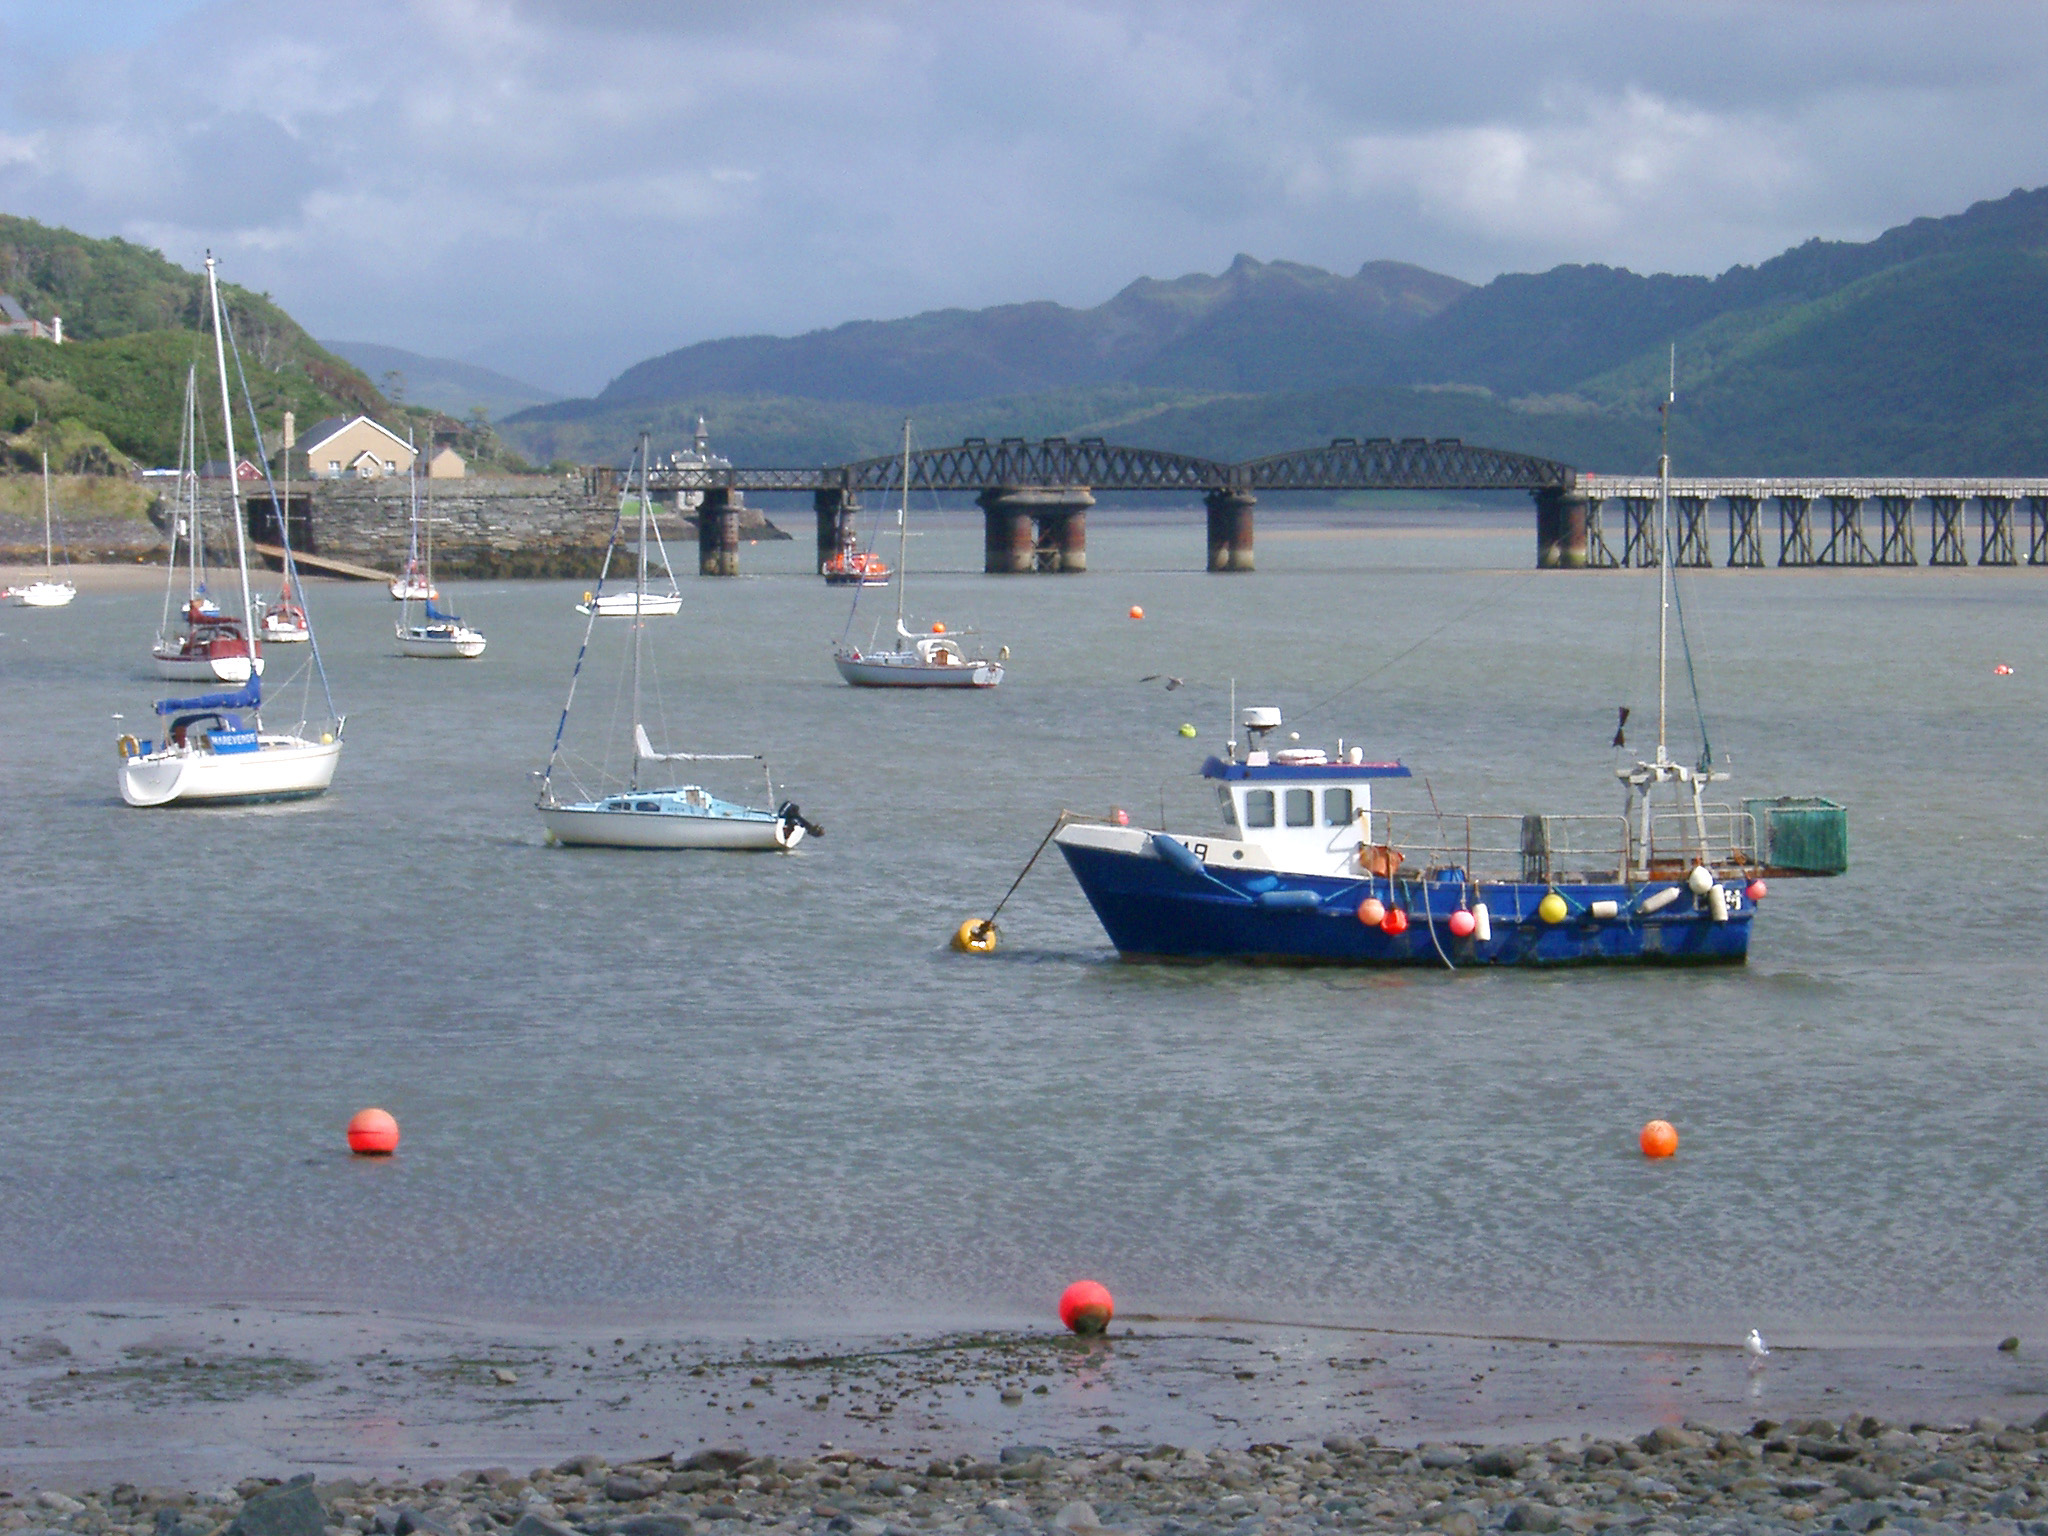 Fishing boats moored in the harbour at Barmouth with the viaduct carrying the railroad crossing the water in the background , Gwynedd, Wales